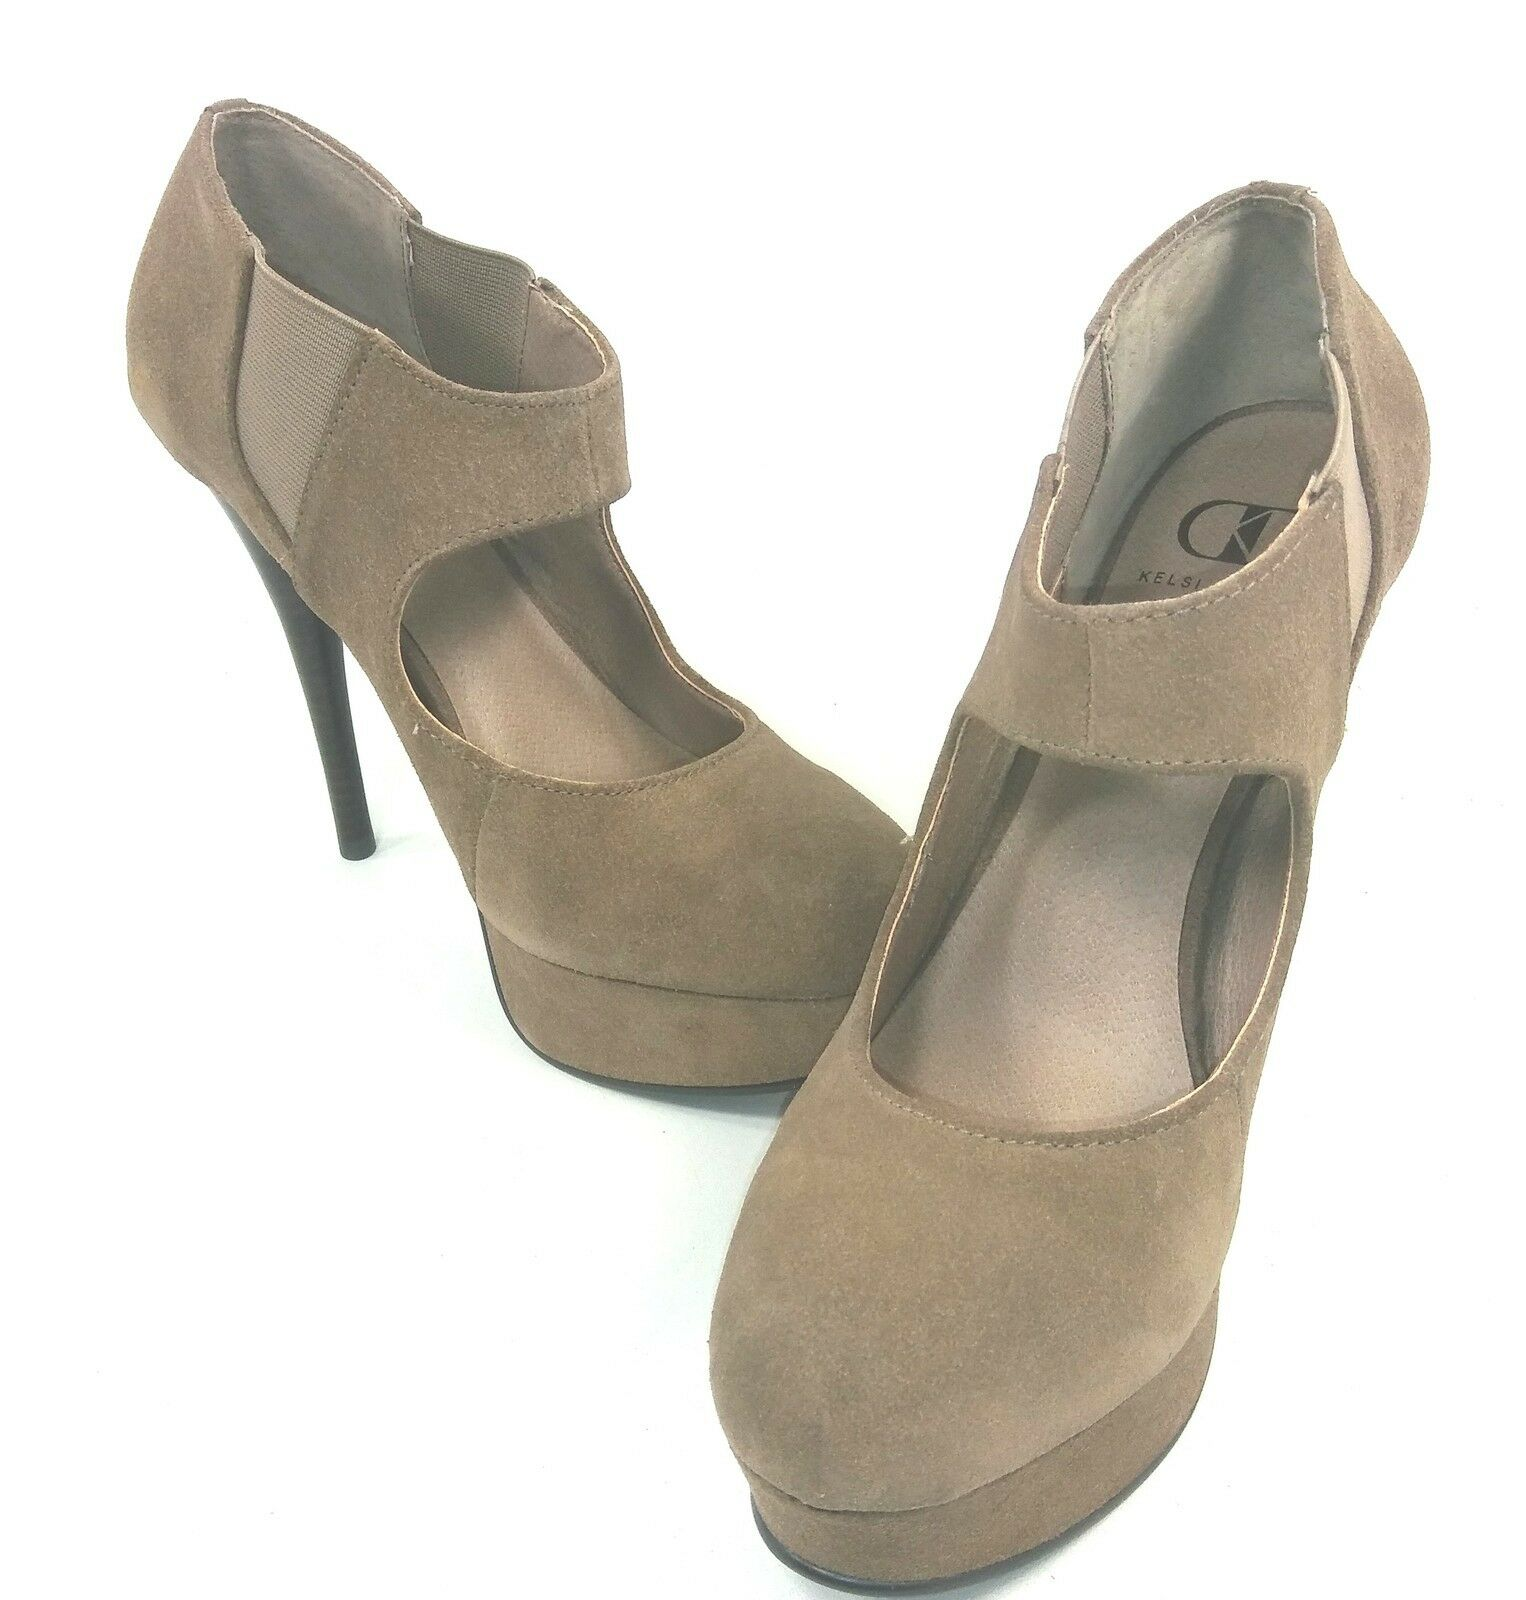 KELSI DAGGER, TRINNY PUMP, Donna, TAUPE SUEDE,   8 M, EURO 38, NEW WITH BOX